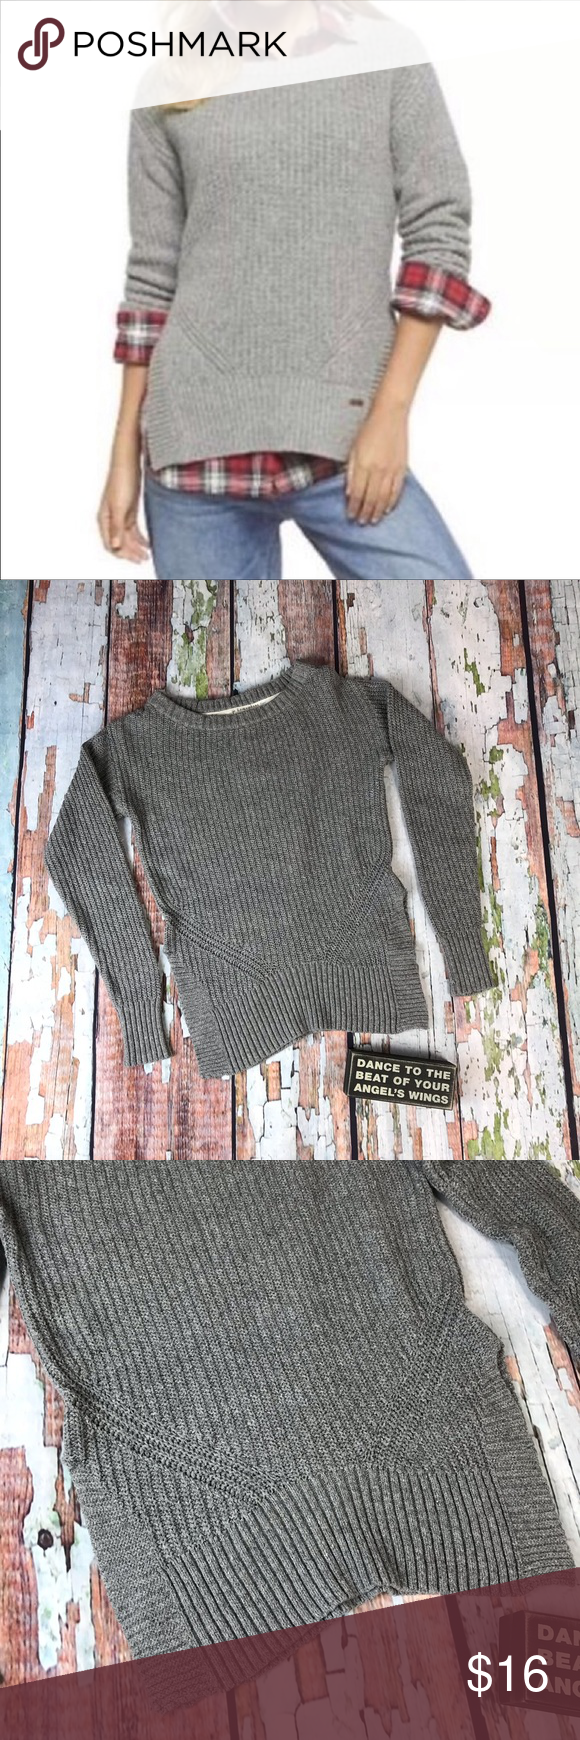 Toms For Target Gray Ribbed Knit Sweater In Good Condition Comes From A Smoke Free Pet Friendly Home Medium Color There Are Slots On Either Side